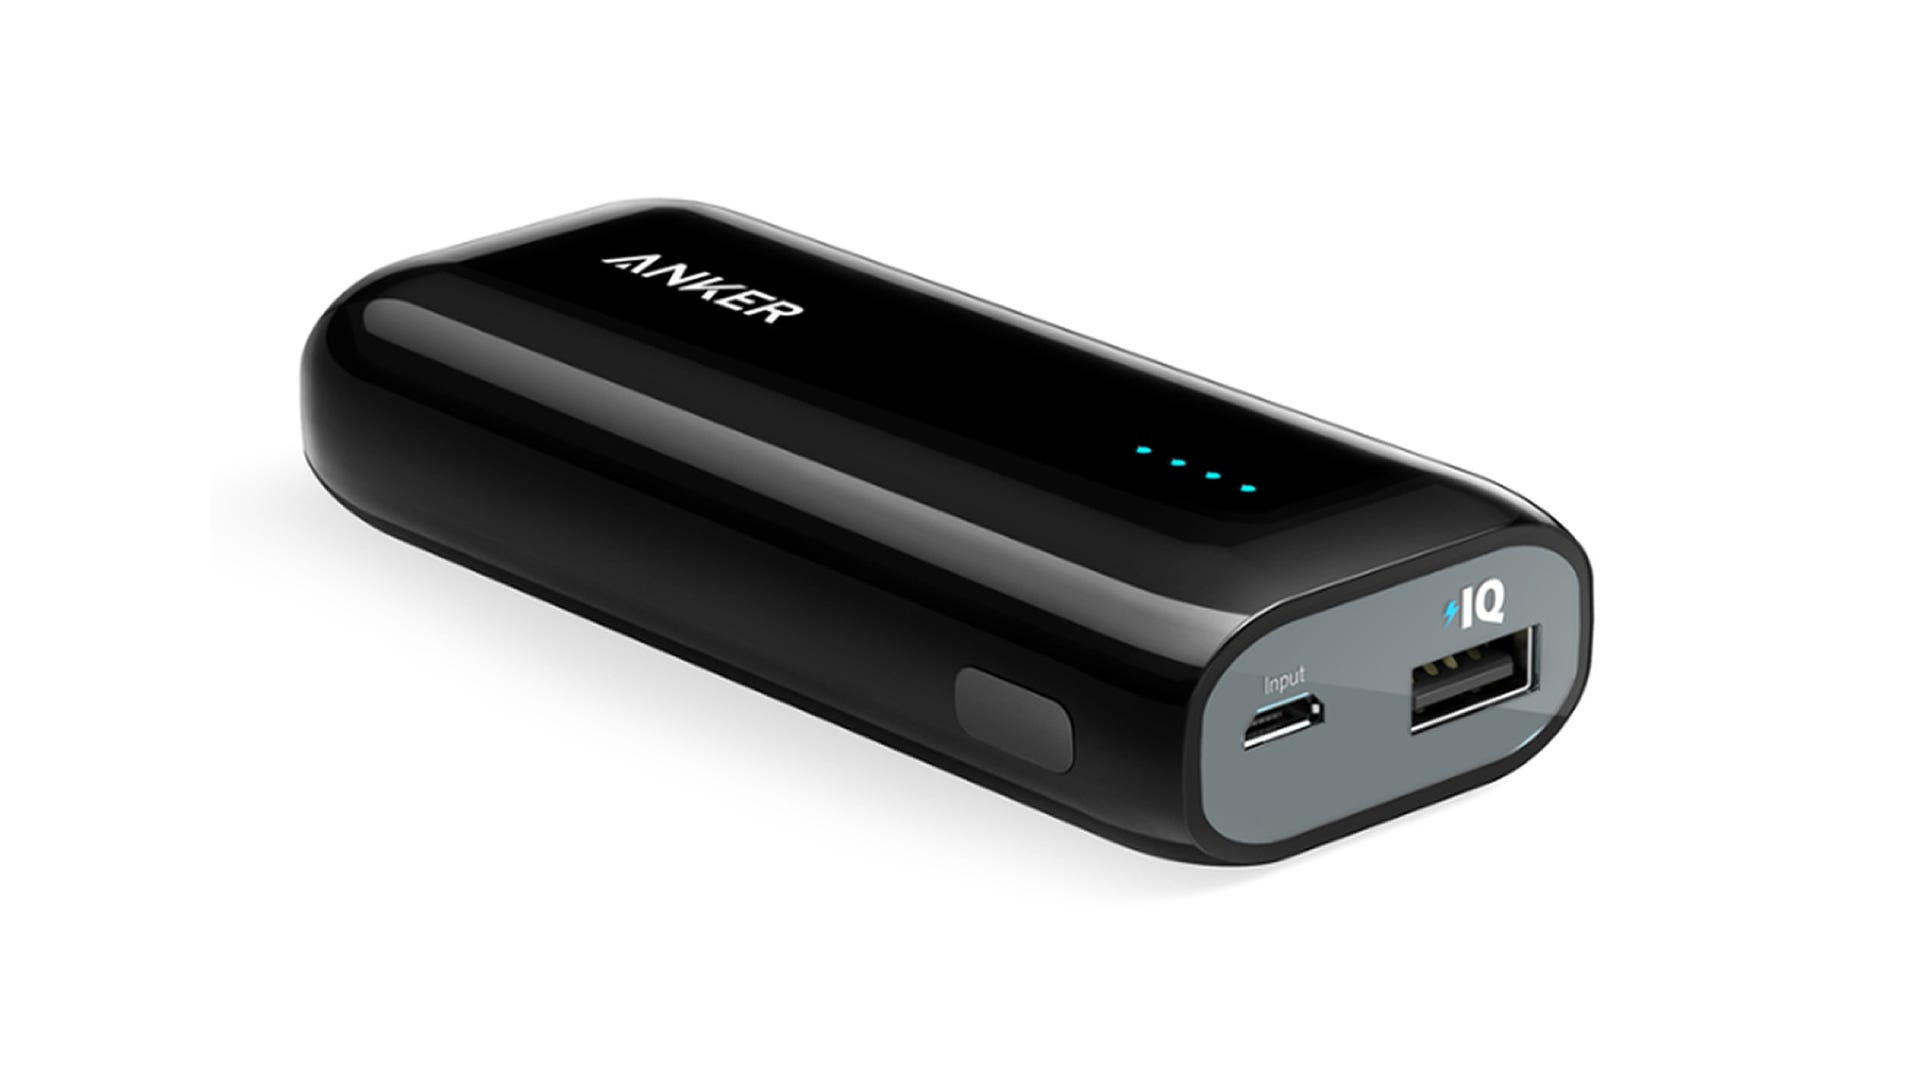 The Anker Astro E1 Ultra Compact Portable Charger